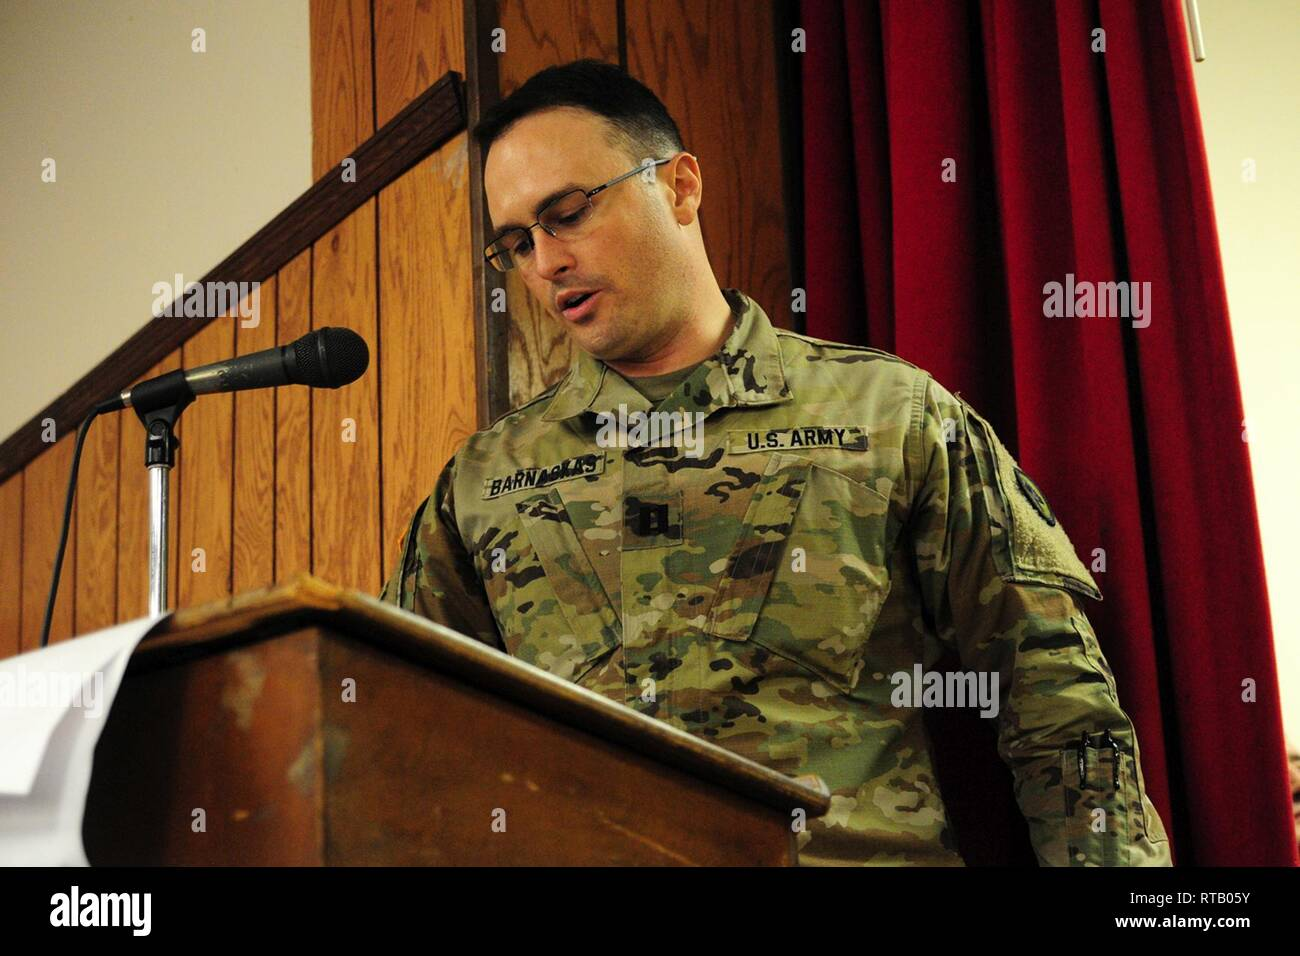 Capt. Jeremy J. Barnaskas, company commander, addresses his troops and family members at the farewell ceremony. Soldiers from Hotel Company, 250th Brigade Support Battalion, said farewell to family, friends and New Jersey National Guard leadership at a farewell ceremony Feb. 5, 2019 at the Veterans of Foreign Wars Post 5084 in Elmwood Park, New Jersey. The Teaneck-based Soldiers will deploy to the Horn of Africa in support of Operation Enduring Freedom. - Stock Image